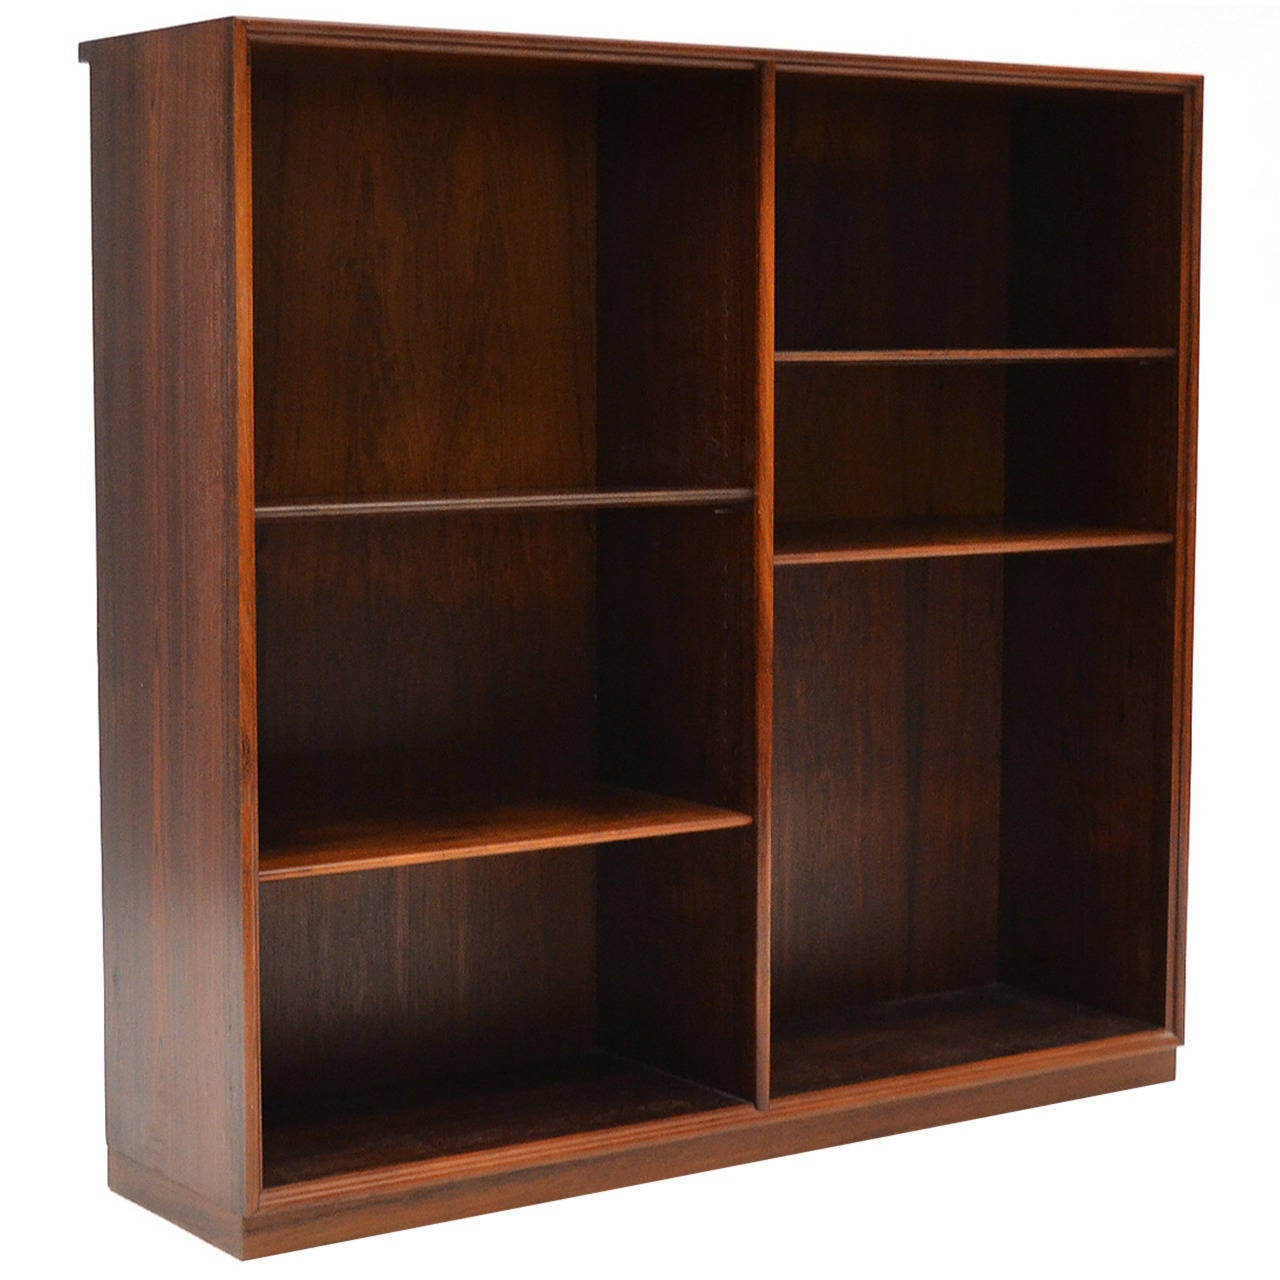 Danish Modern Bookcase In Rosewood For Sale At 1stdibs